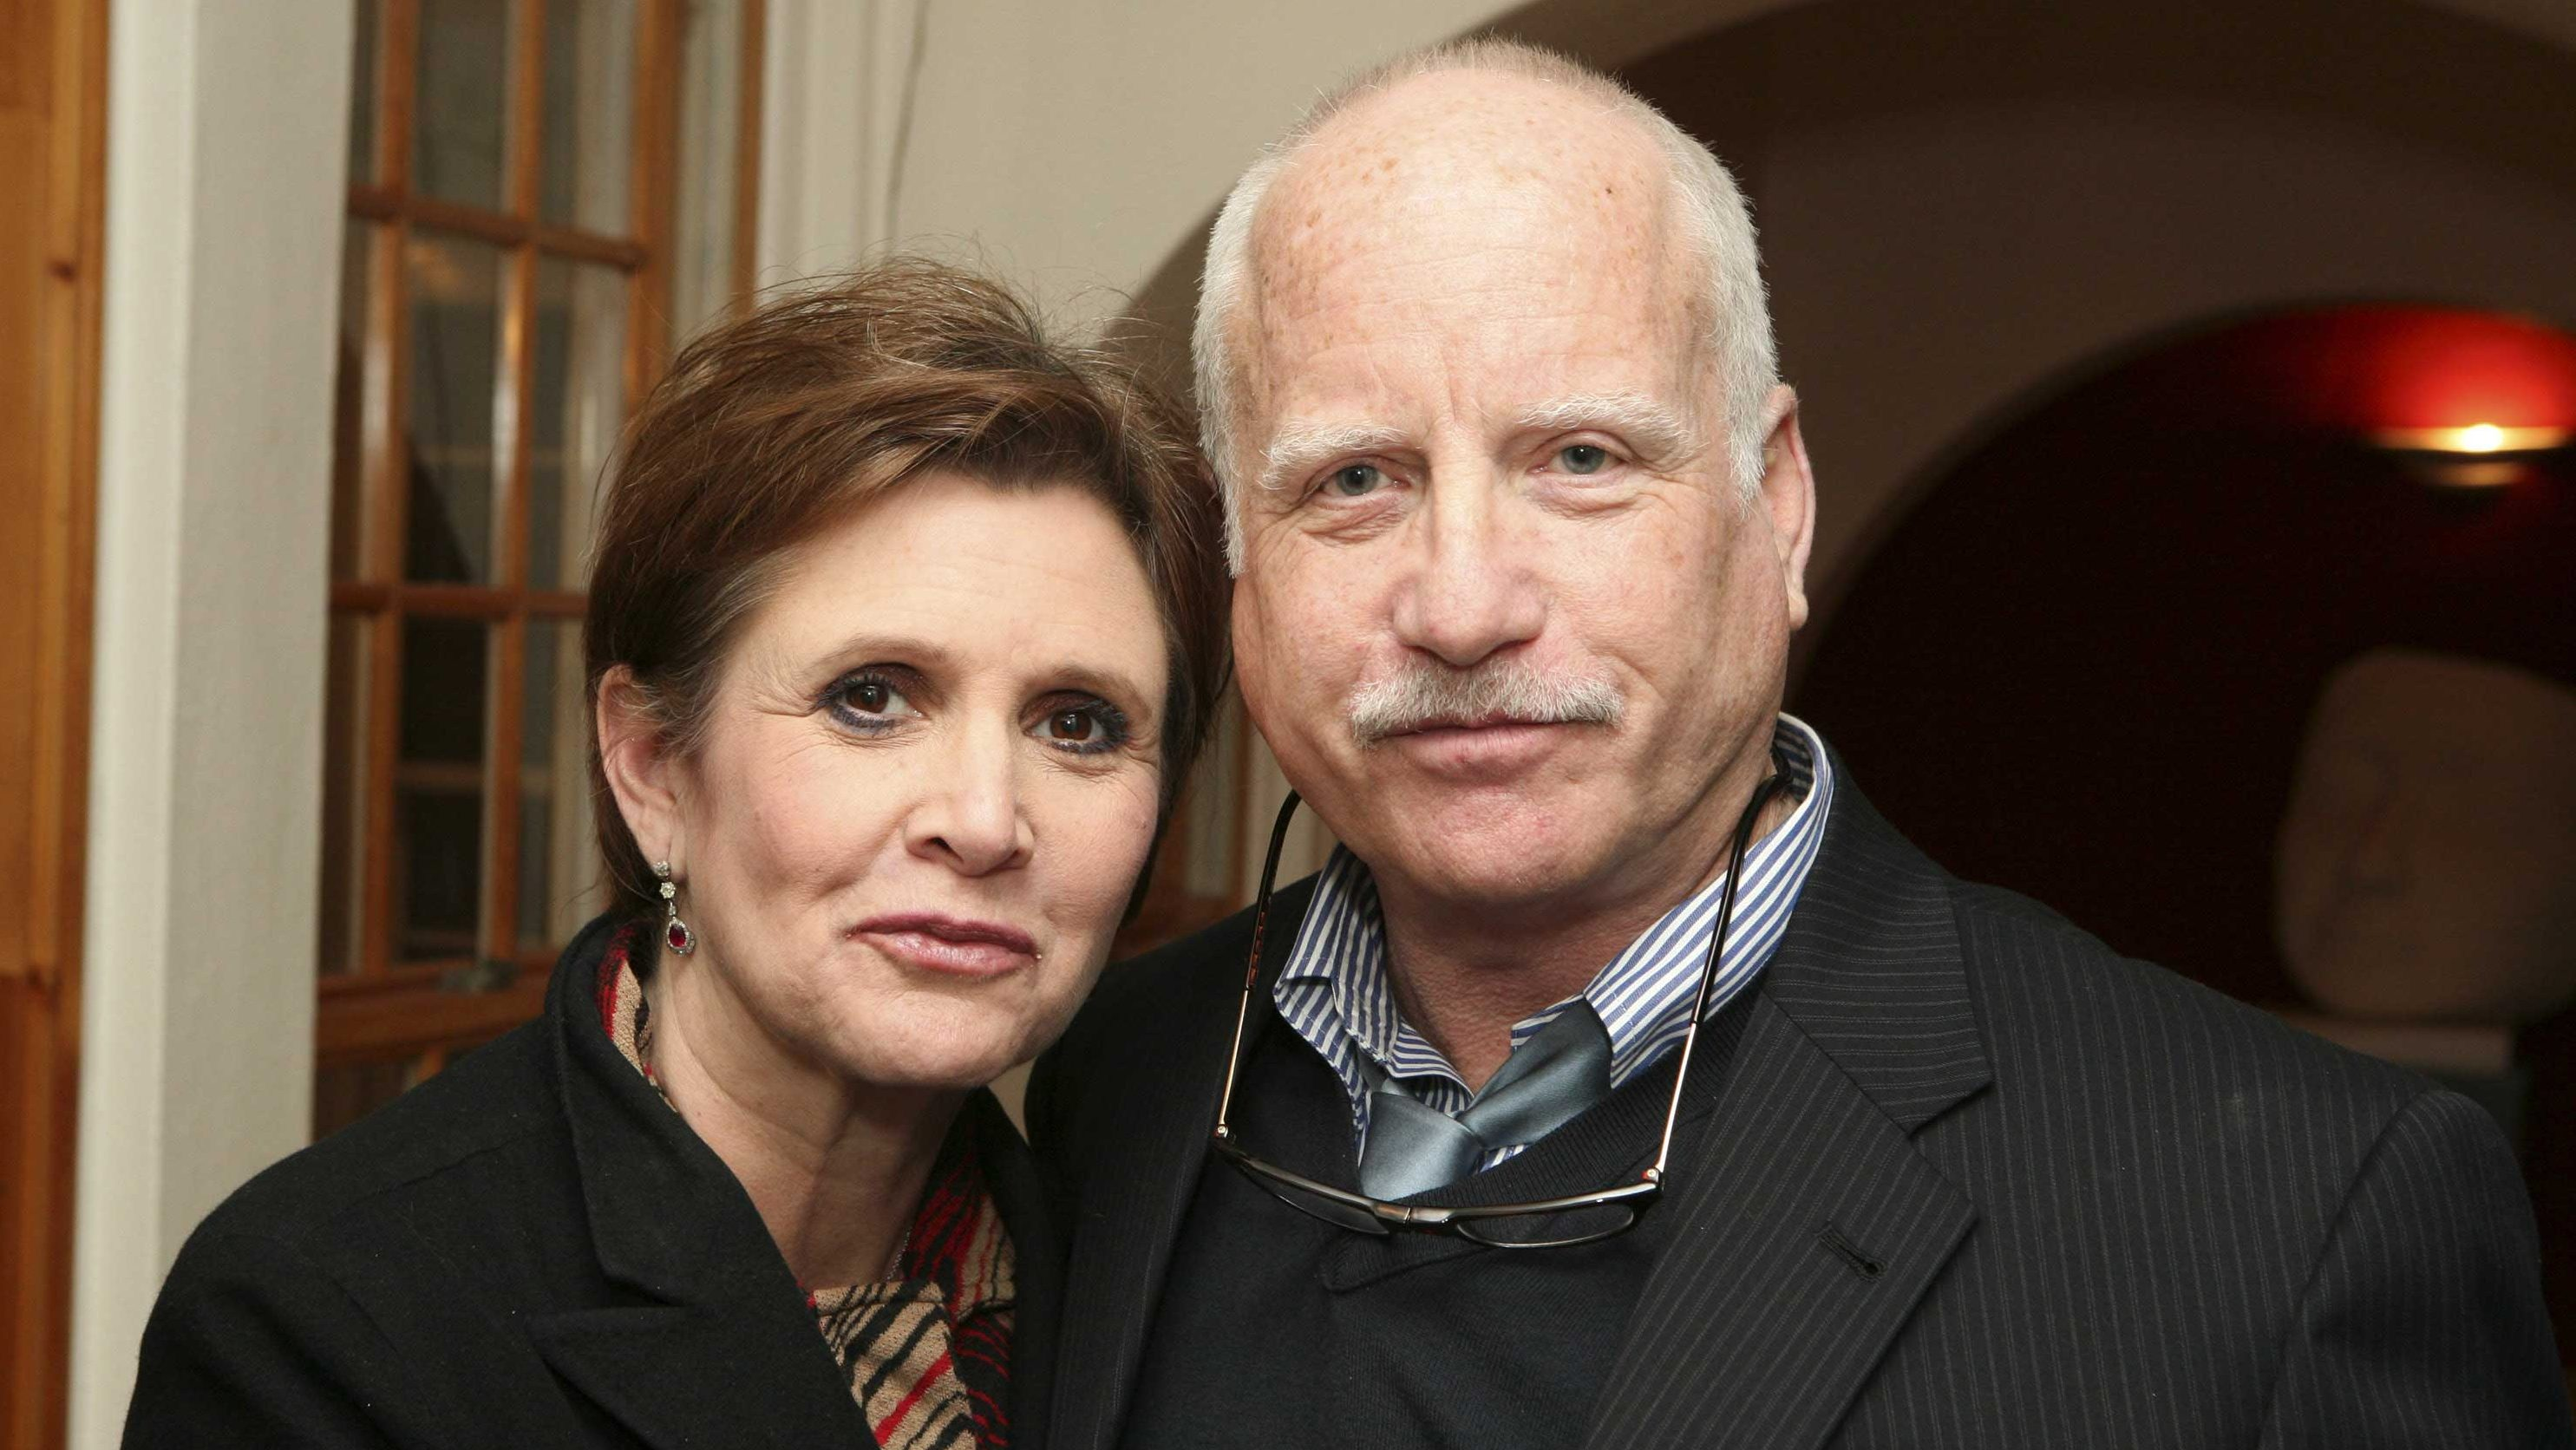 Richard Dreyfuss Reminisces on Time Carrie Fisher Upstaged Him